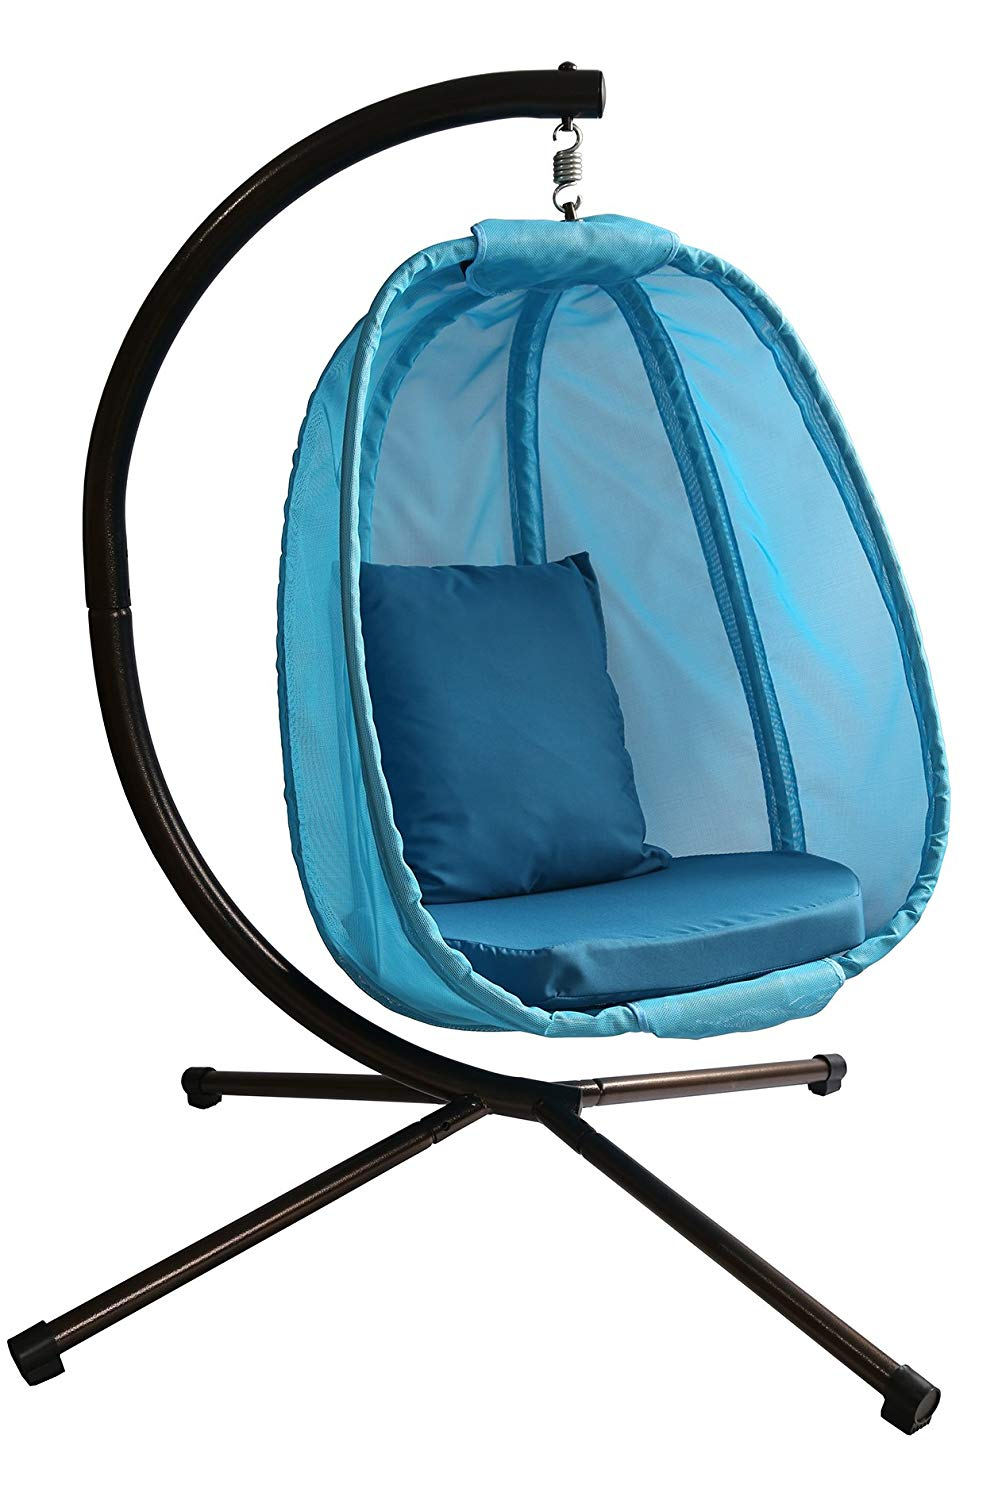 Flowerhouse-Blue-Soft-Hanging-Egg-Chair-for-Teen-Boys